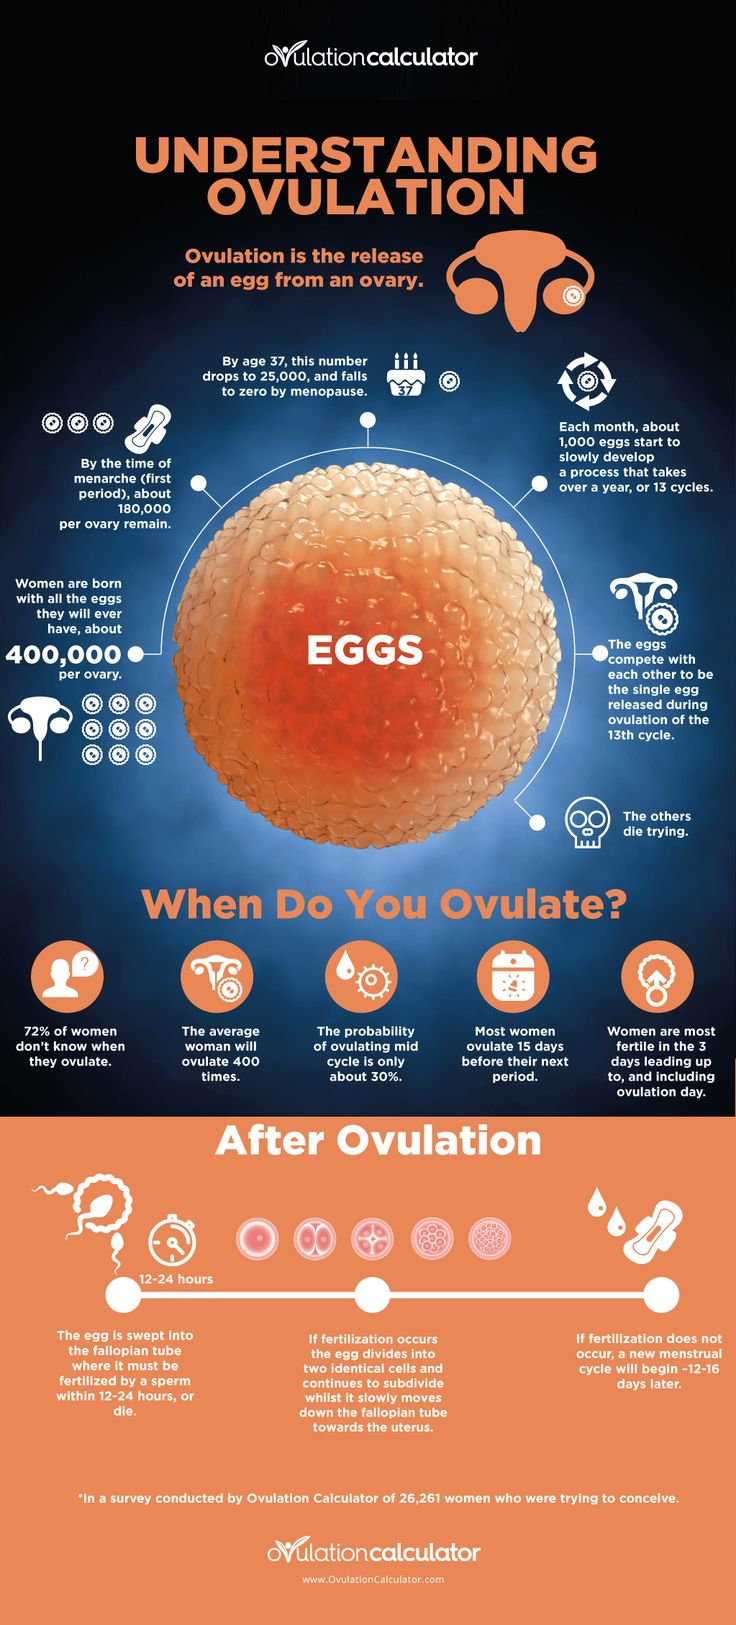 Ovulation date or dating scan - Craig Sewell